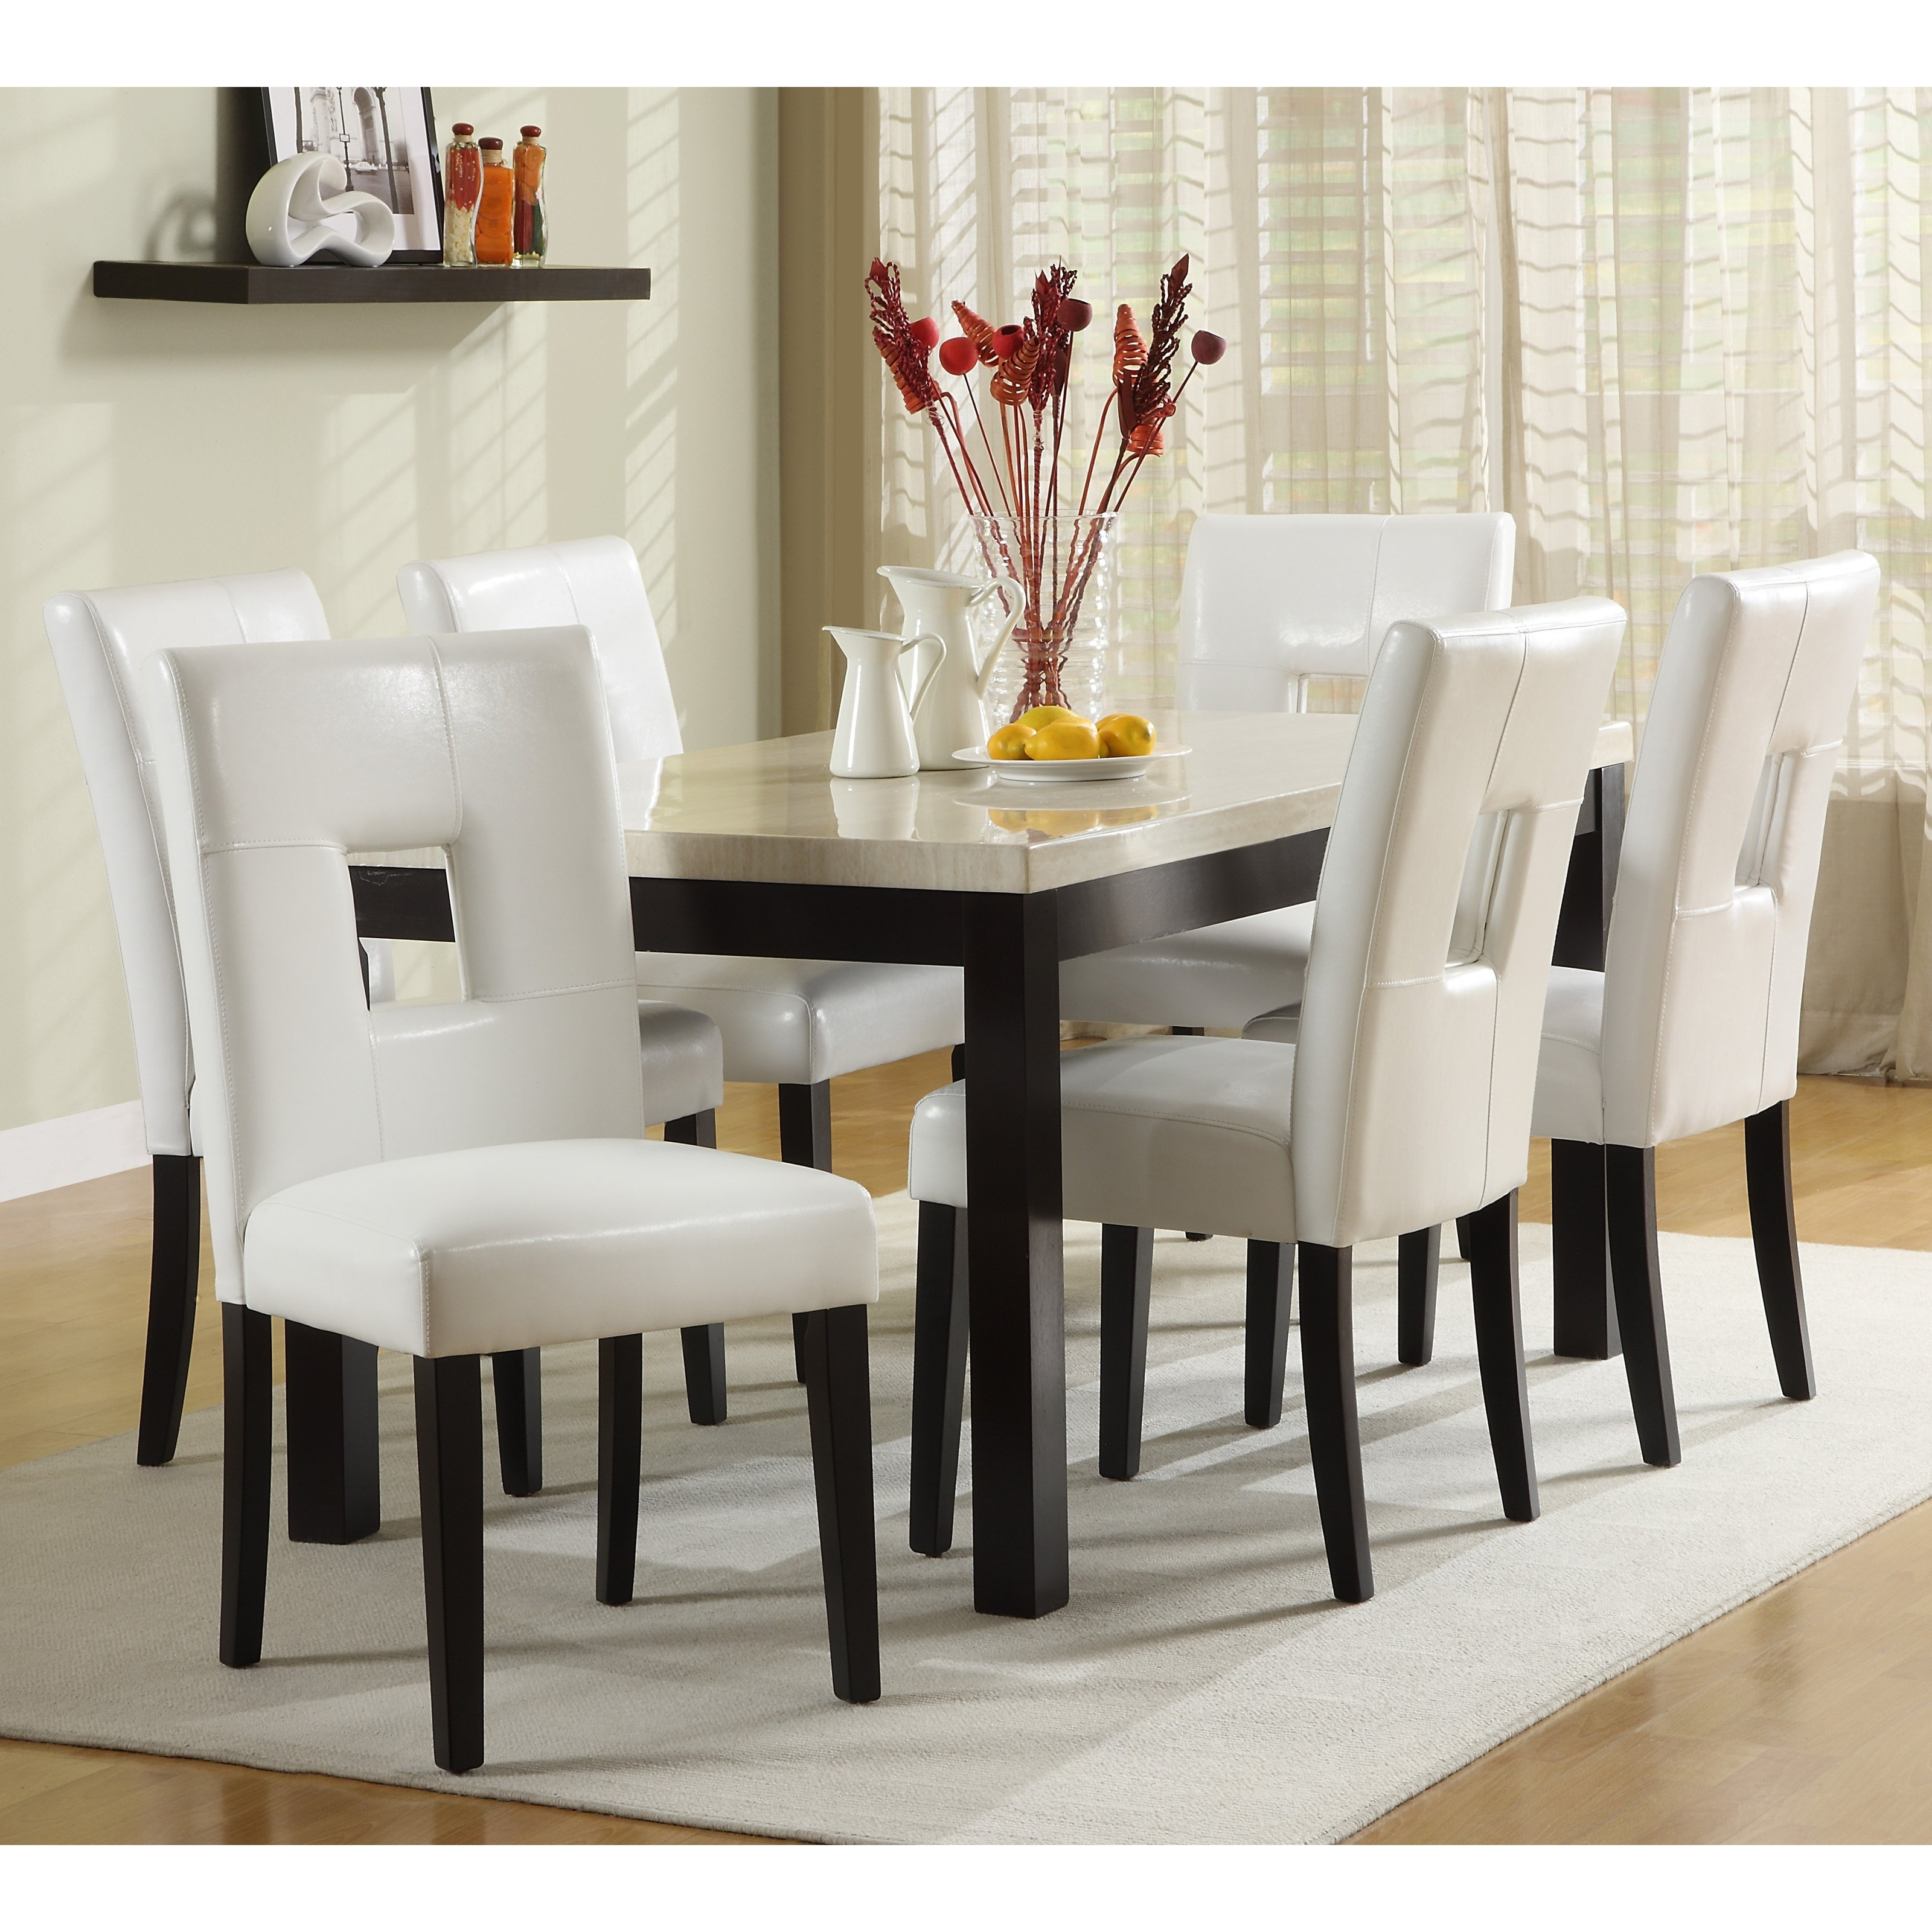 Cream Lacquer Dining Tables Pertaining To 2017 Elegant Interesting Dining Room Chairs For Dining Room (View 6 of 25)